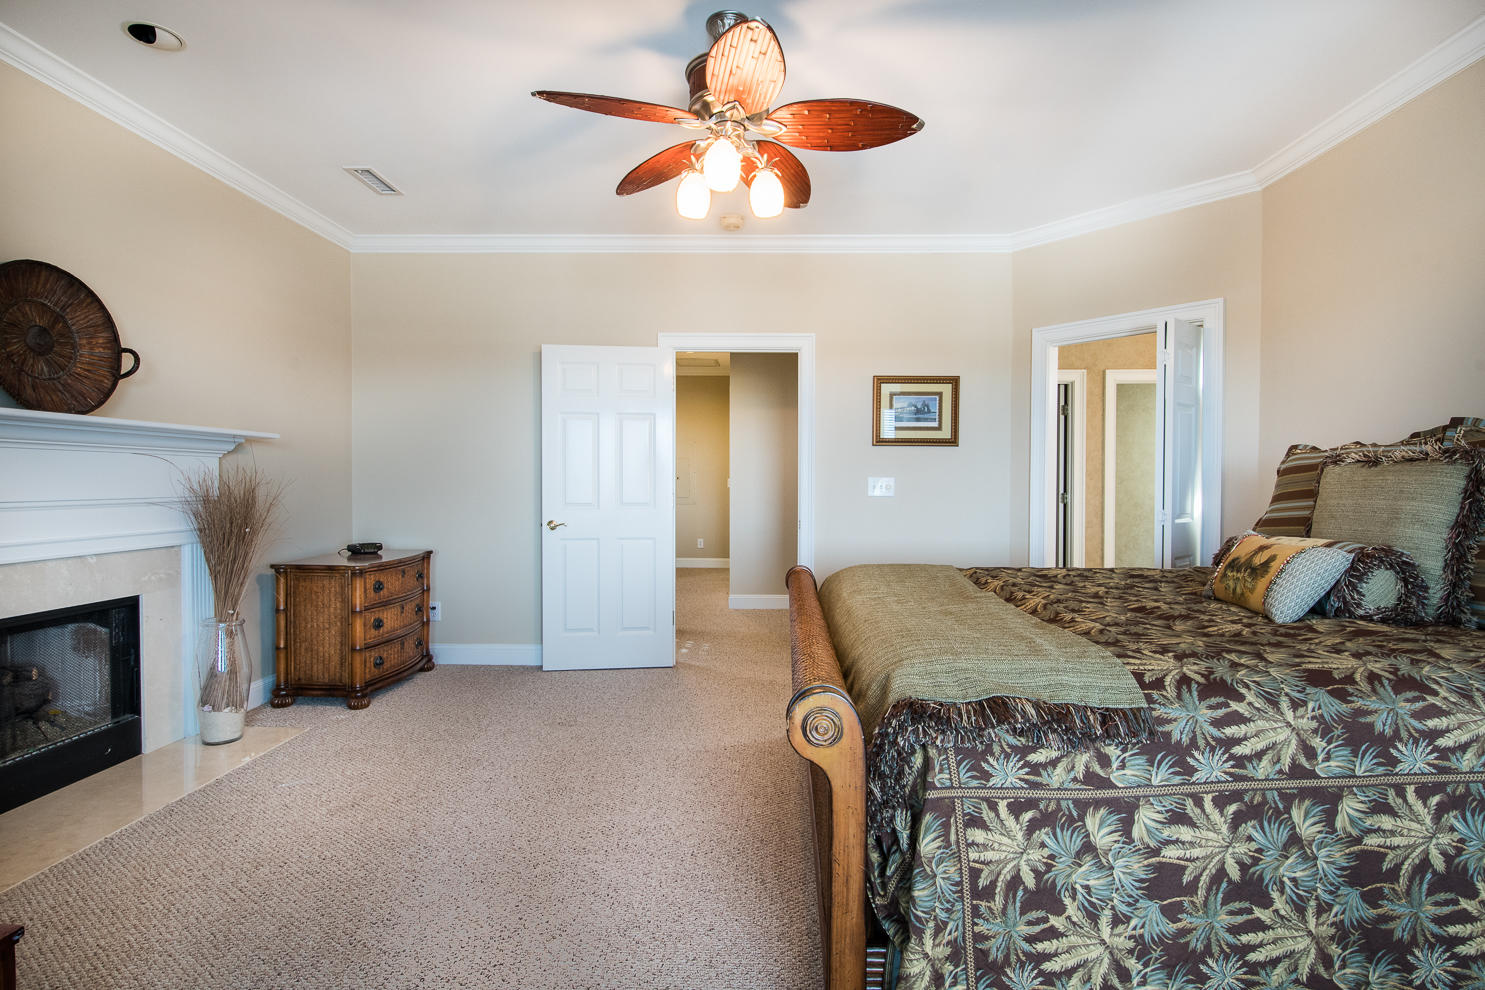 Tolers Cove Homes For Sale - B-4 & B-5 Tolers Cove Marina 70ft + Home, Mount Pleasant, SC - 13